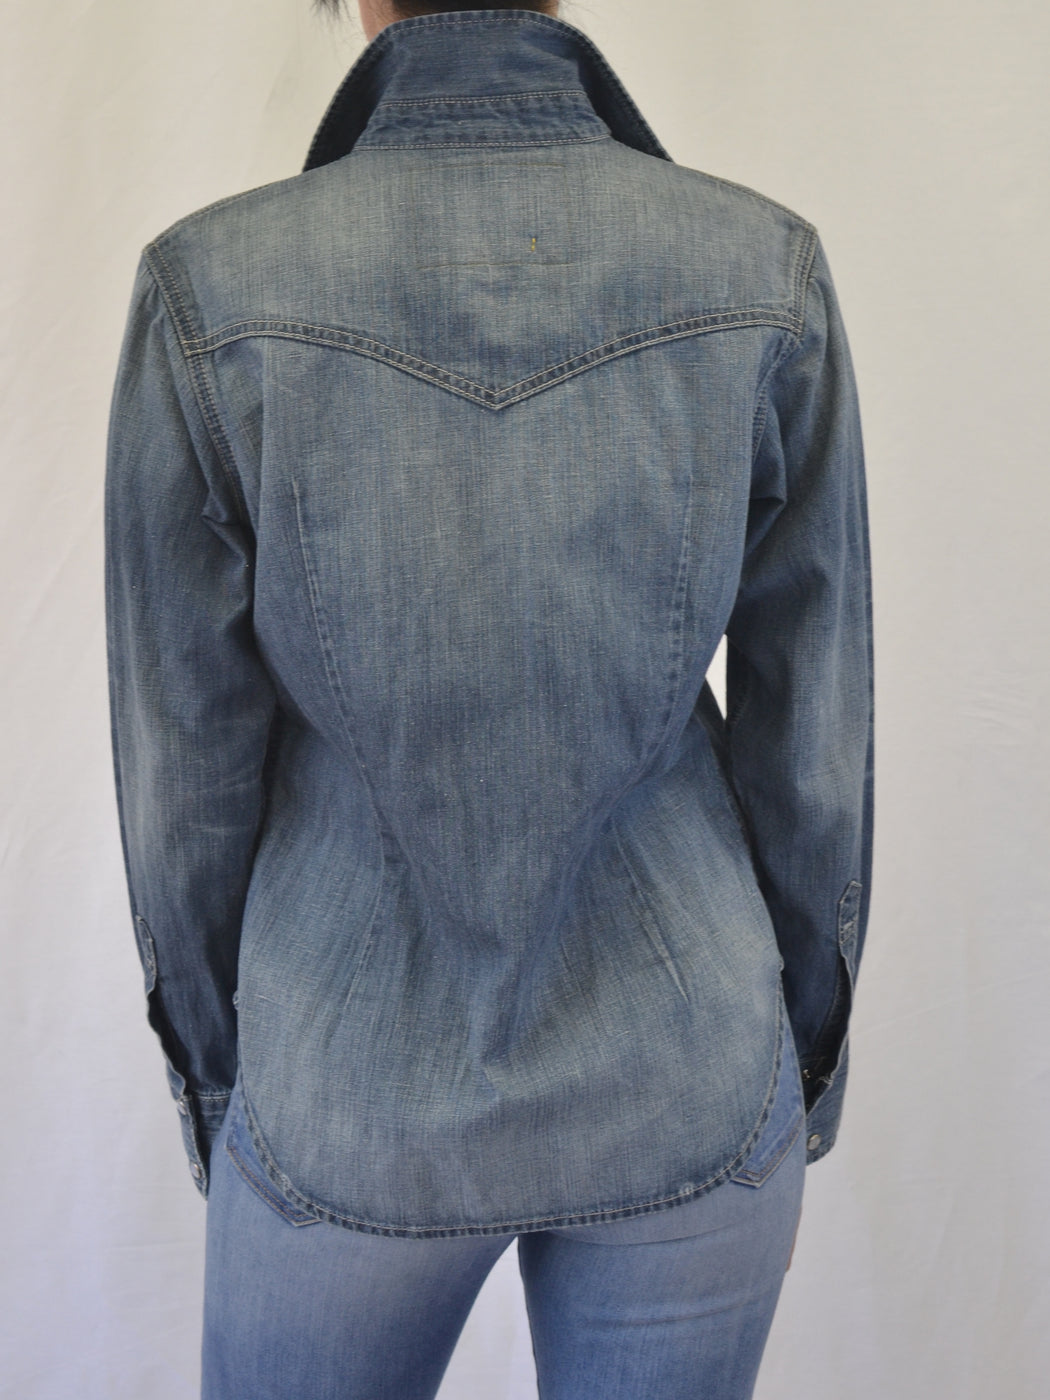 WESTERN COTTON HEMP DENIM SHIRT -Breath Wash